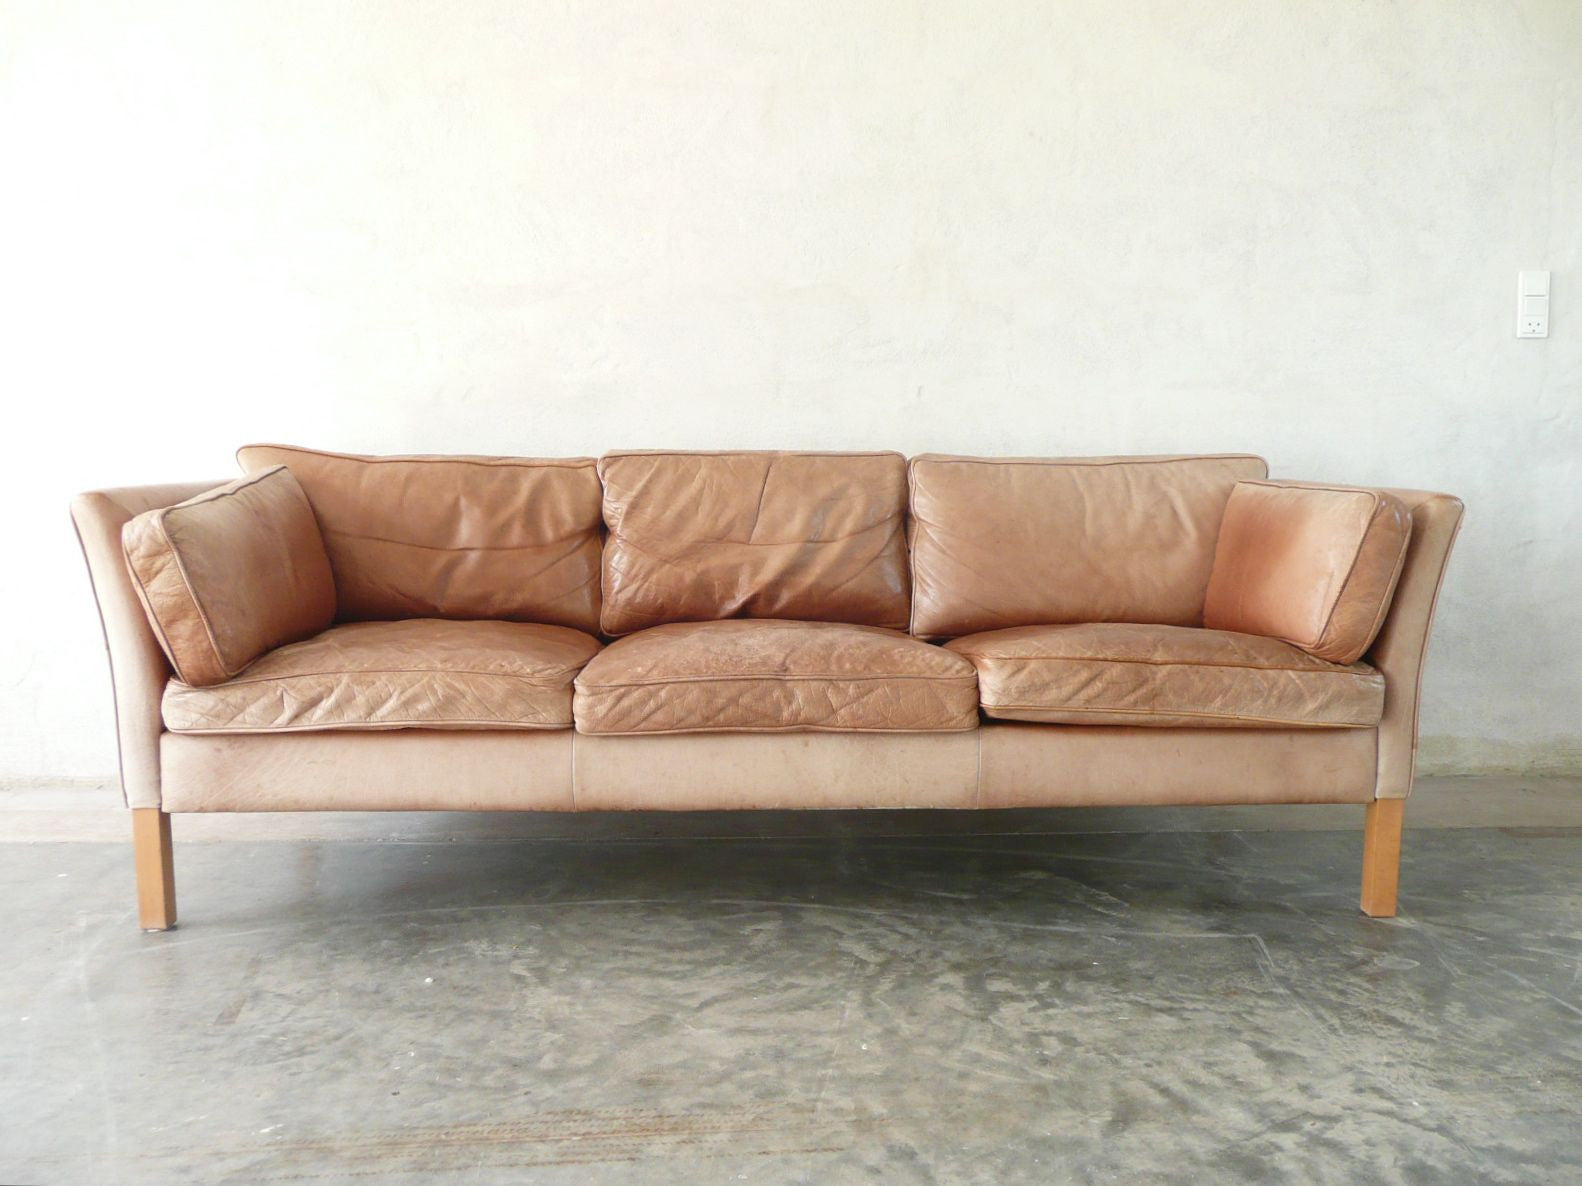 Tanned leather three seat sofa